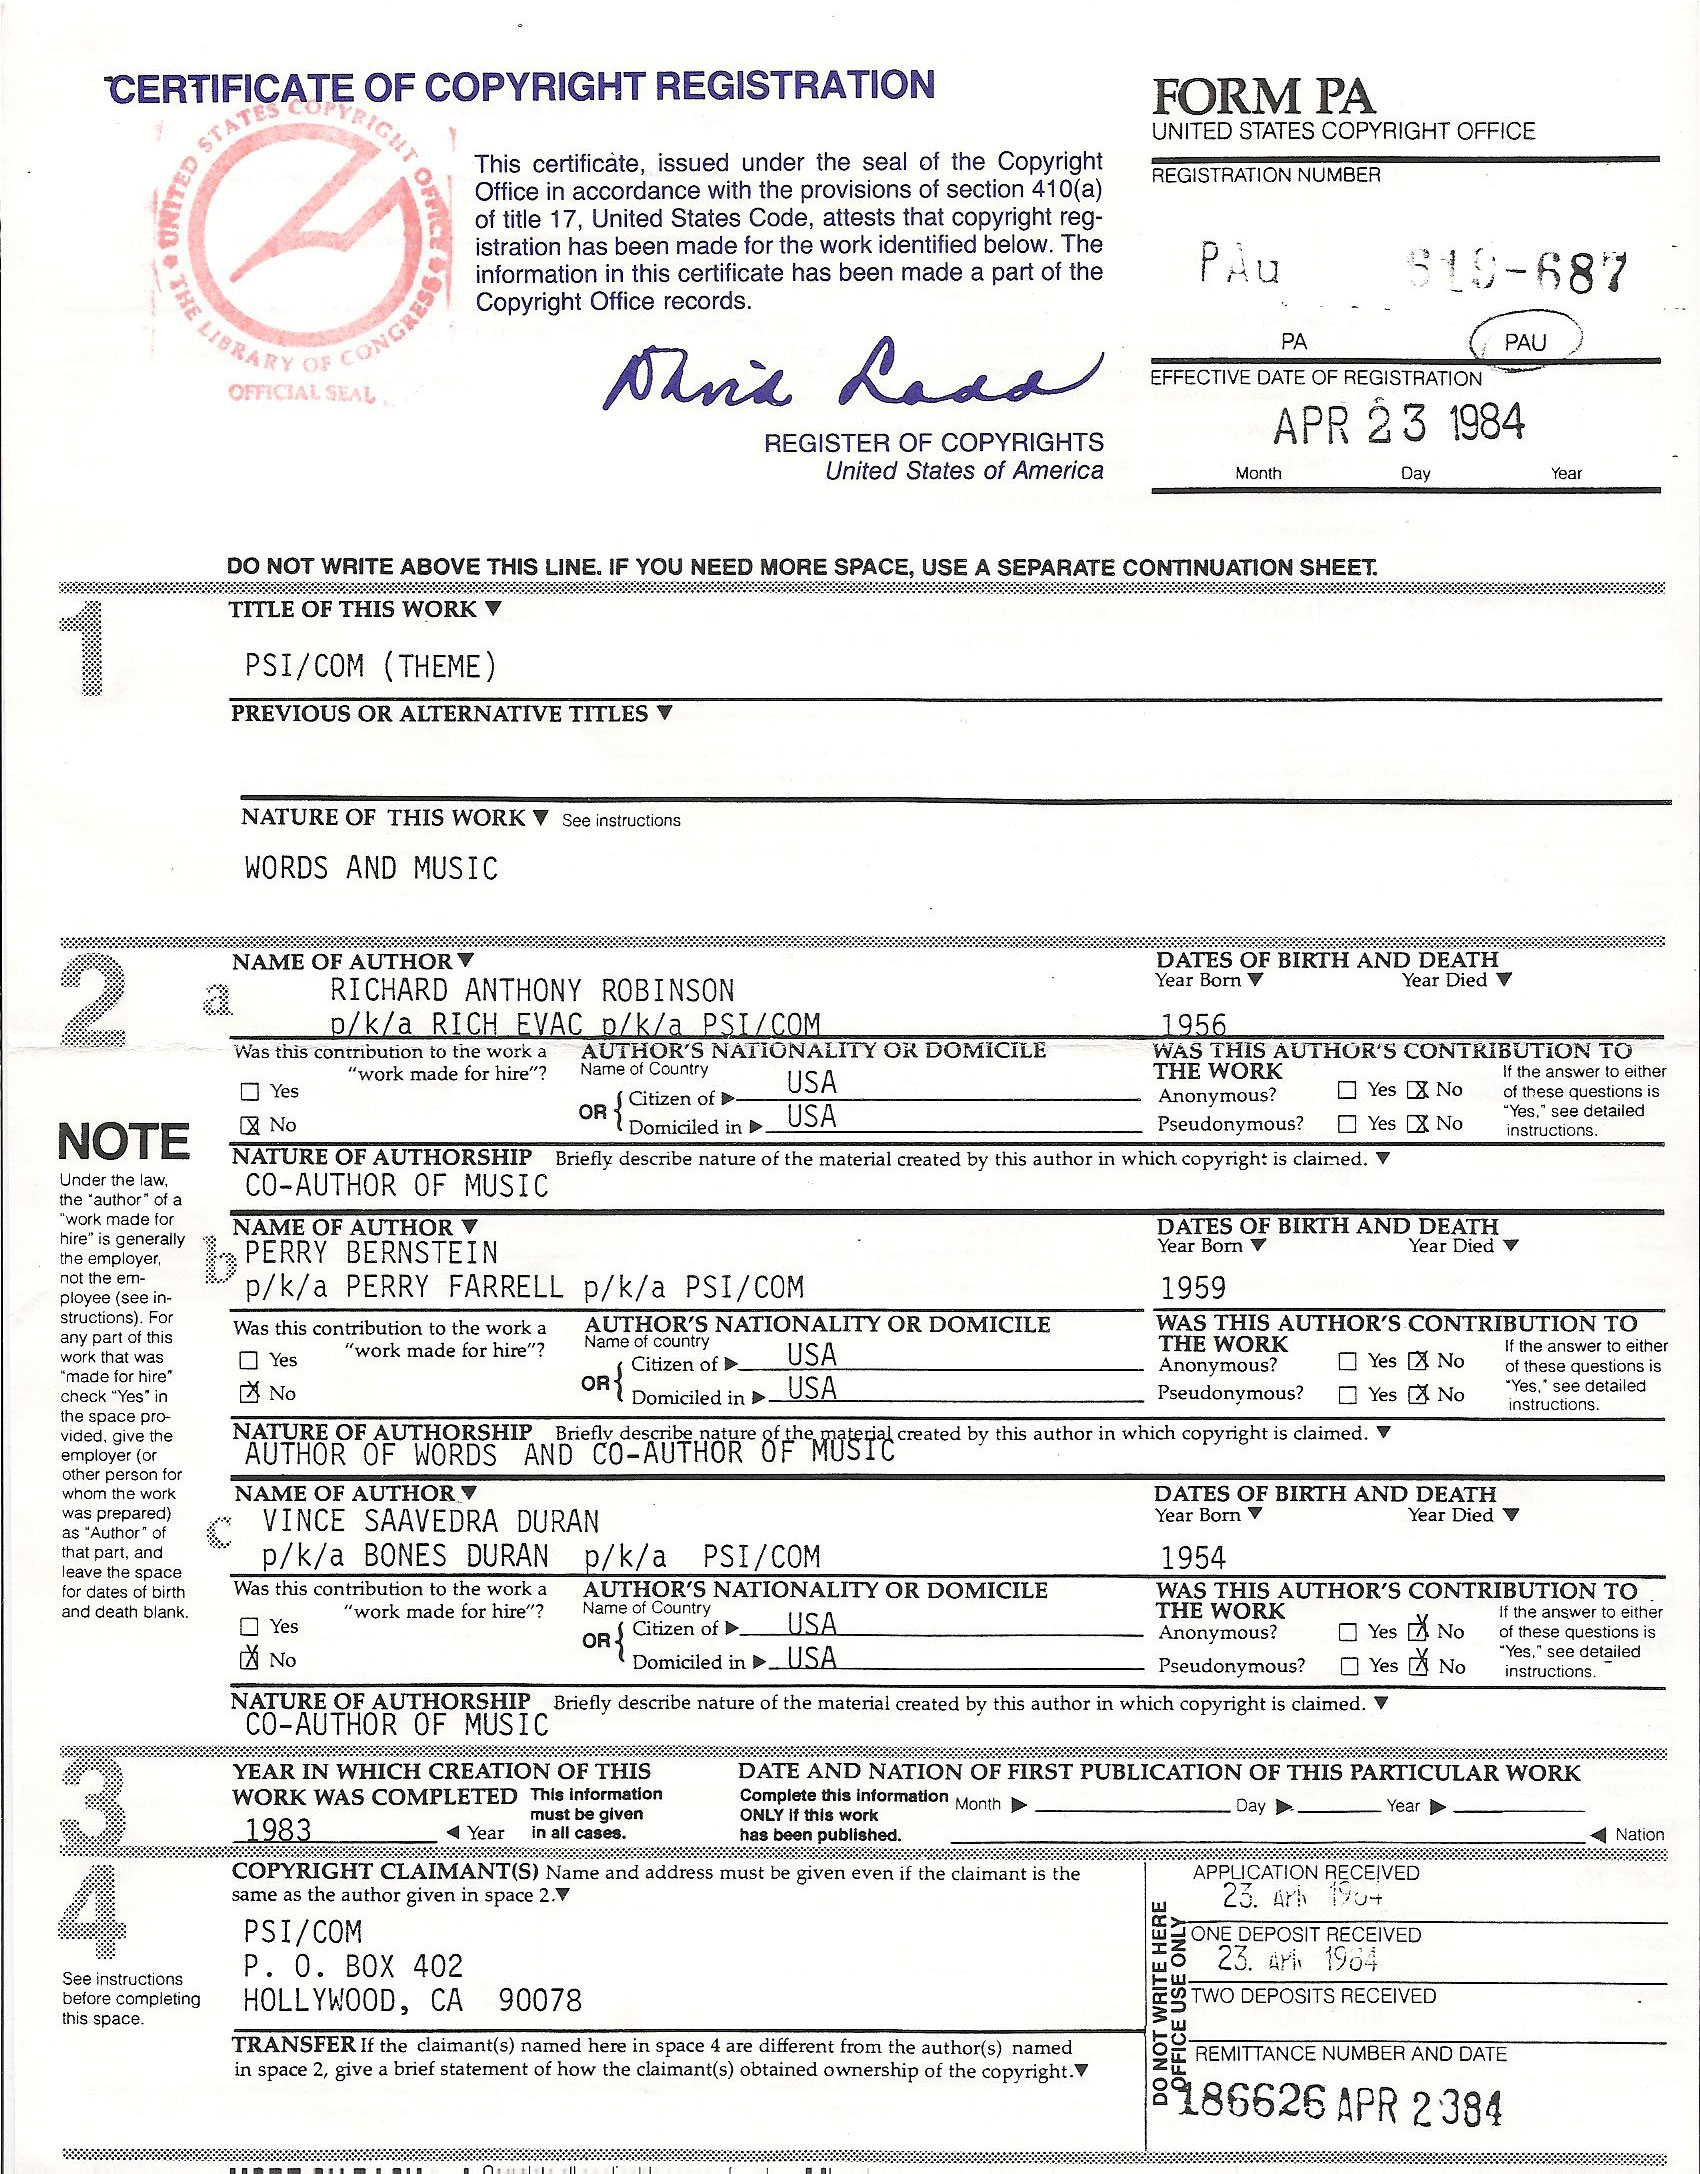 Lovely image of nevada birth certificate business cards and worktape 1 from nevada birth certificate image source janesaddiction aiddatafo Gallery